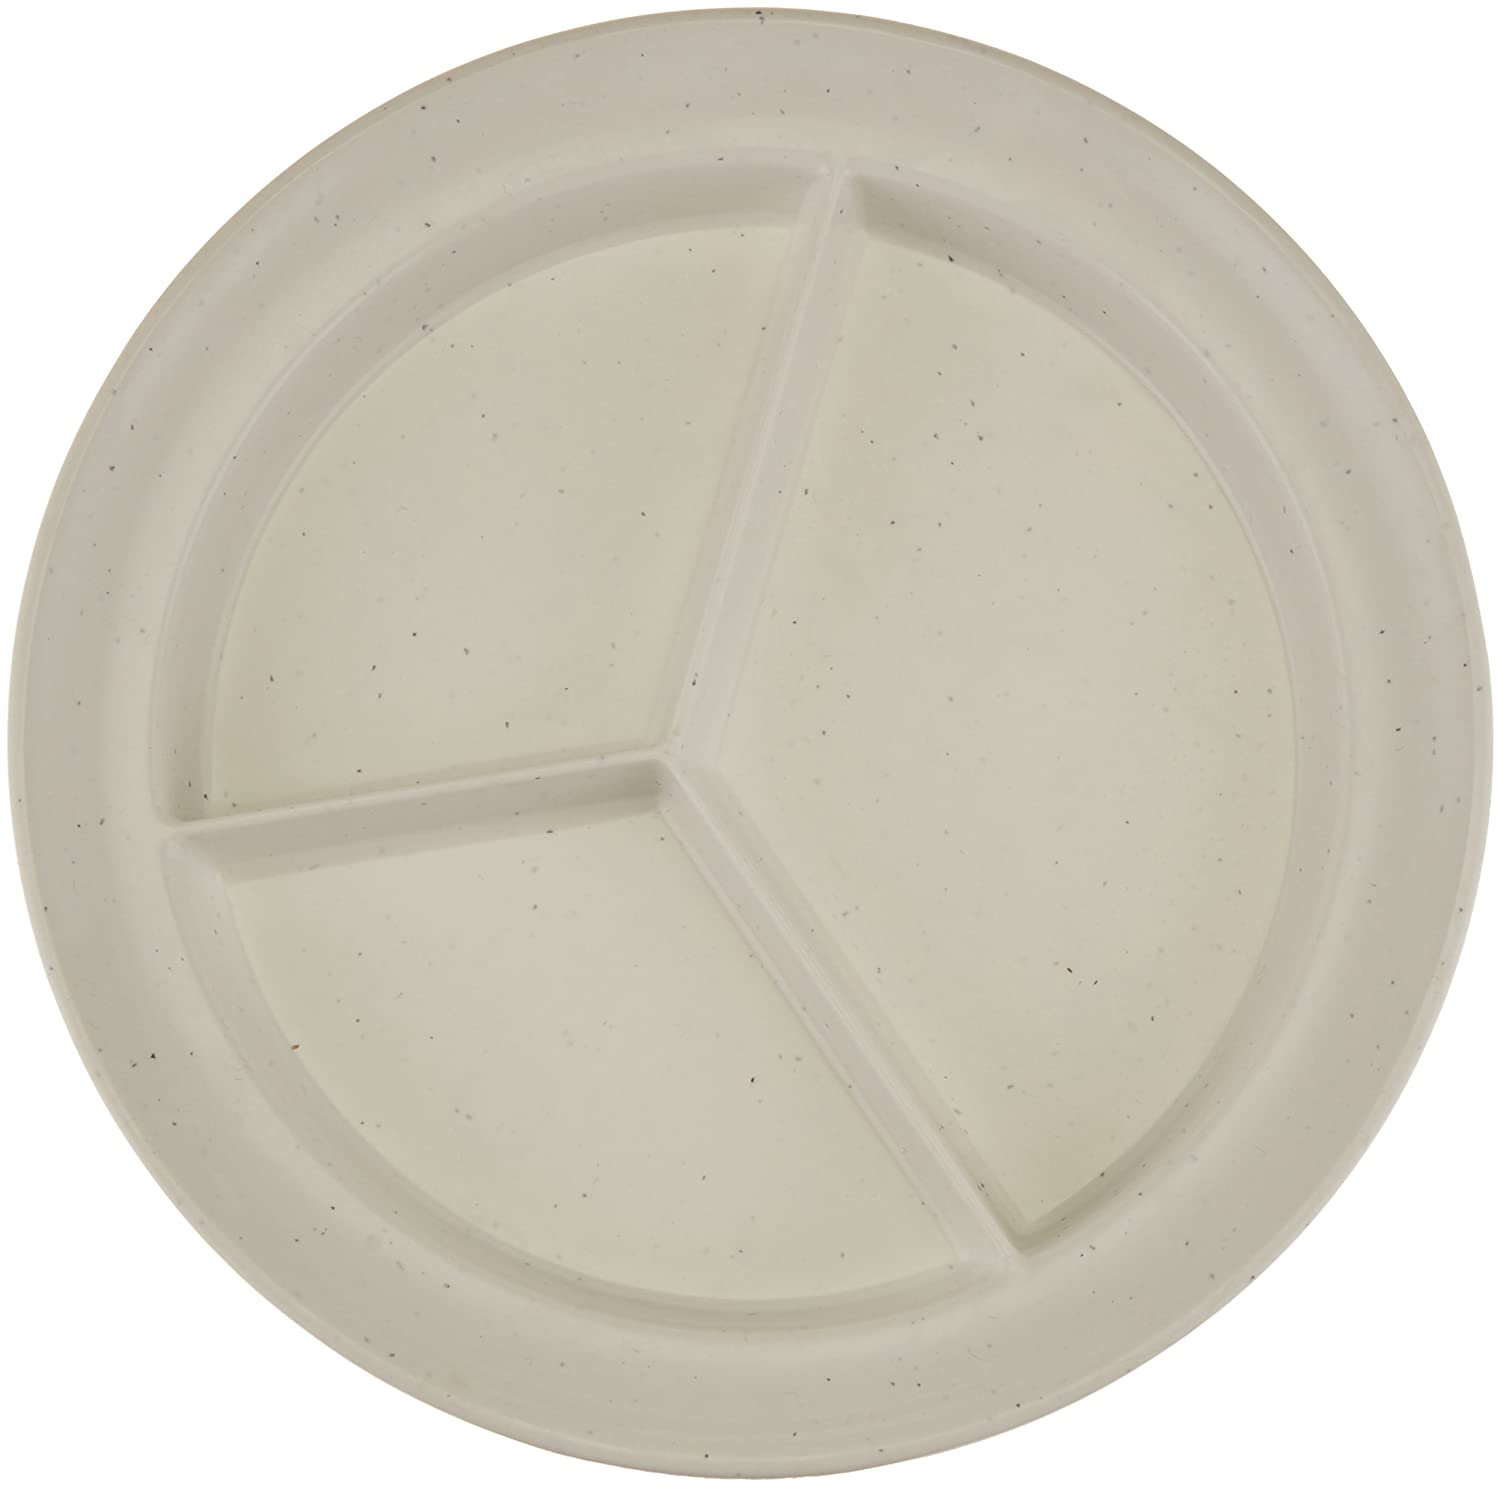 Sammons Preston Compartment Dishes, Break-Resistant Polyester Plastic with Non-Skid Bottom, 8.75